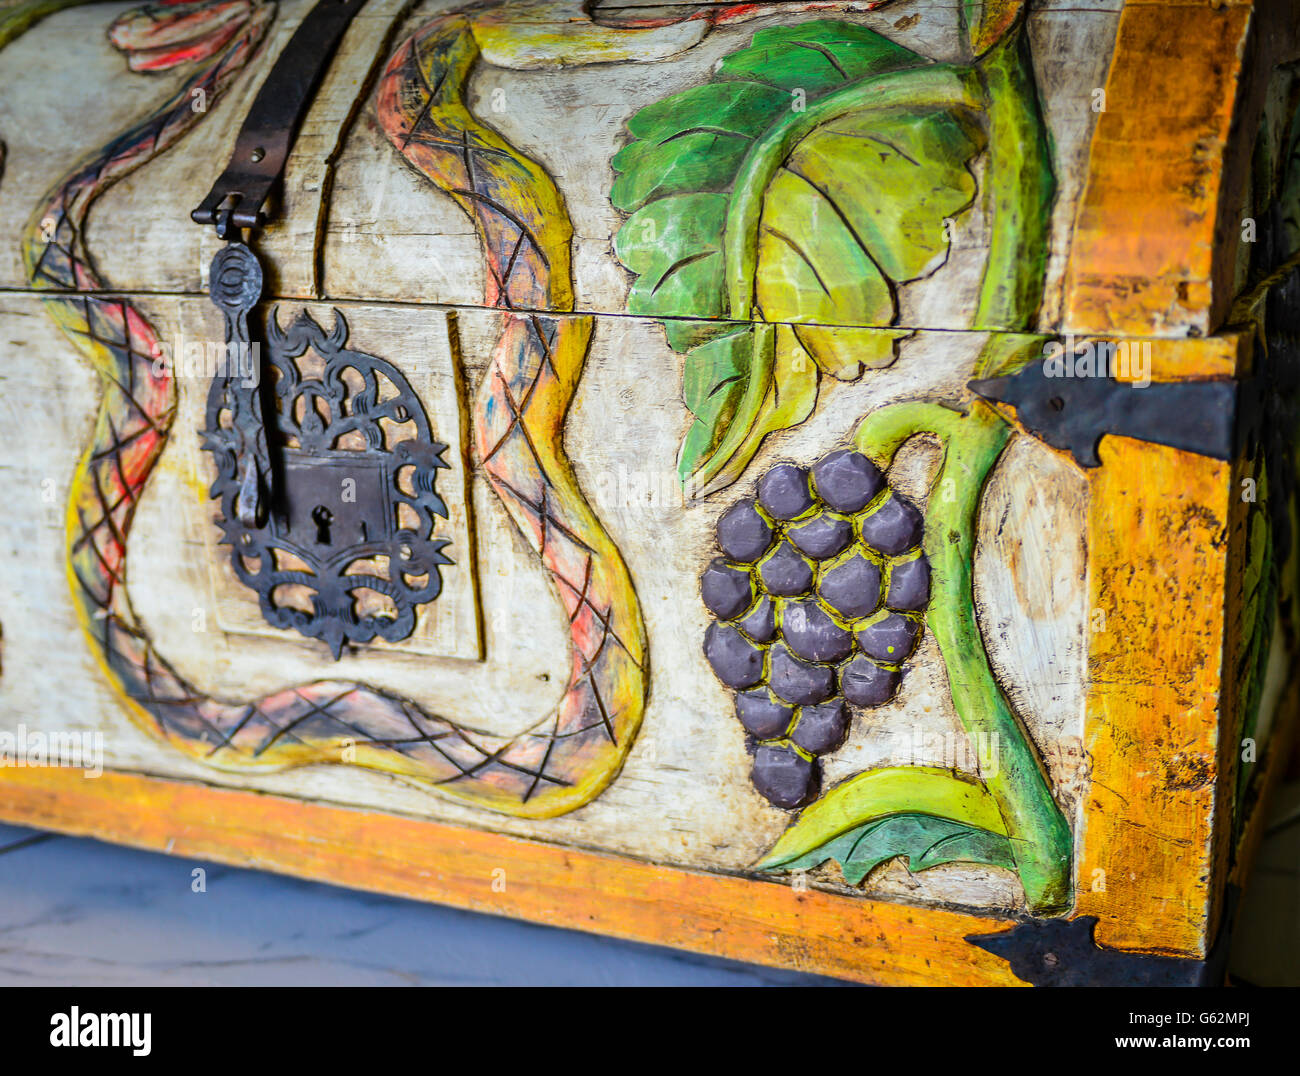 A charming & whimsical folk art style wood carved trunk depicting snakes and grapes and birds with decorative metal Stock Photo